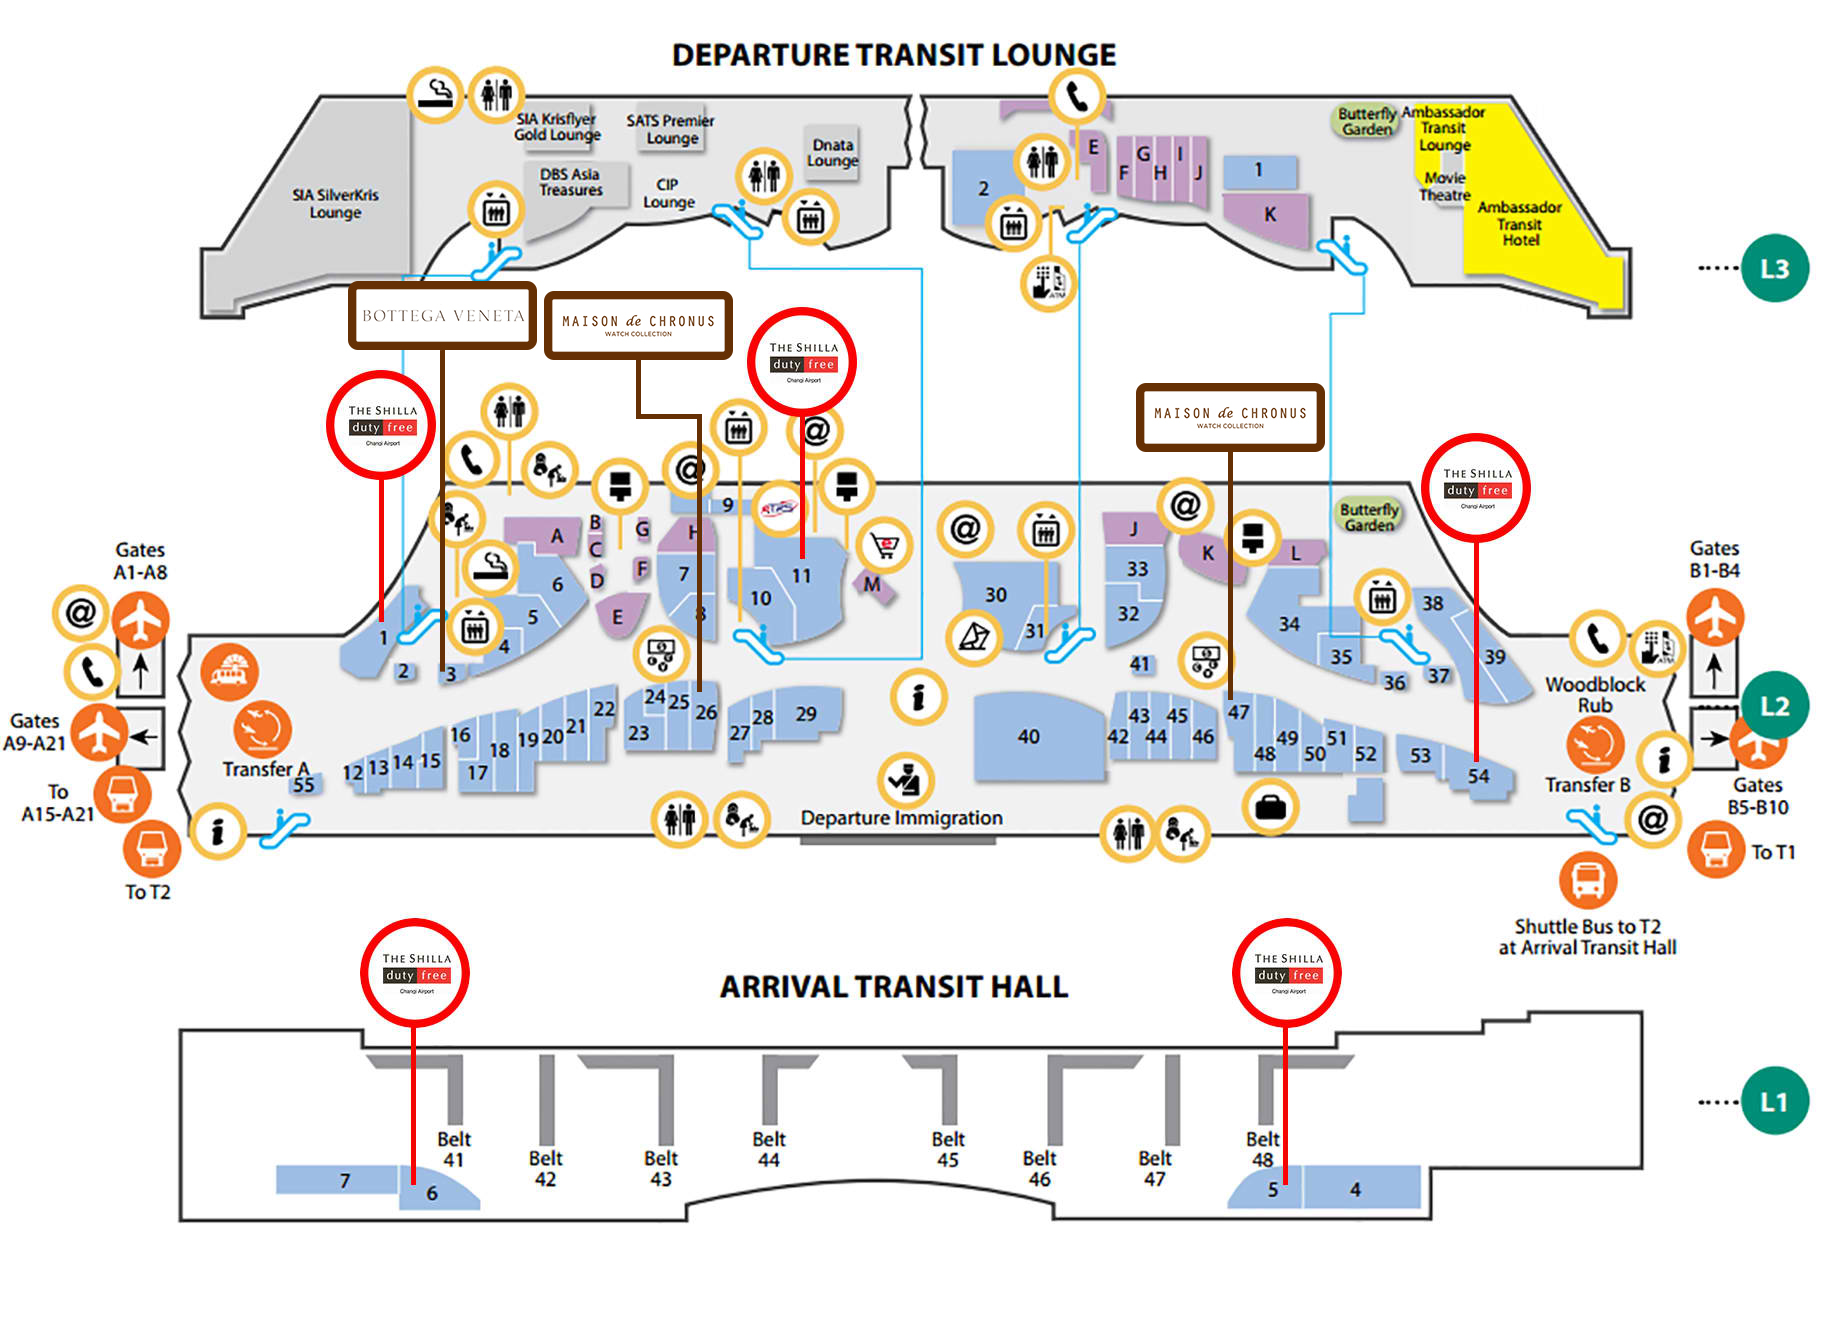 Changi Airport Arrival Hall Map The Shilla Duty Free Store Listings | The Shilla Duty Free